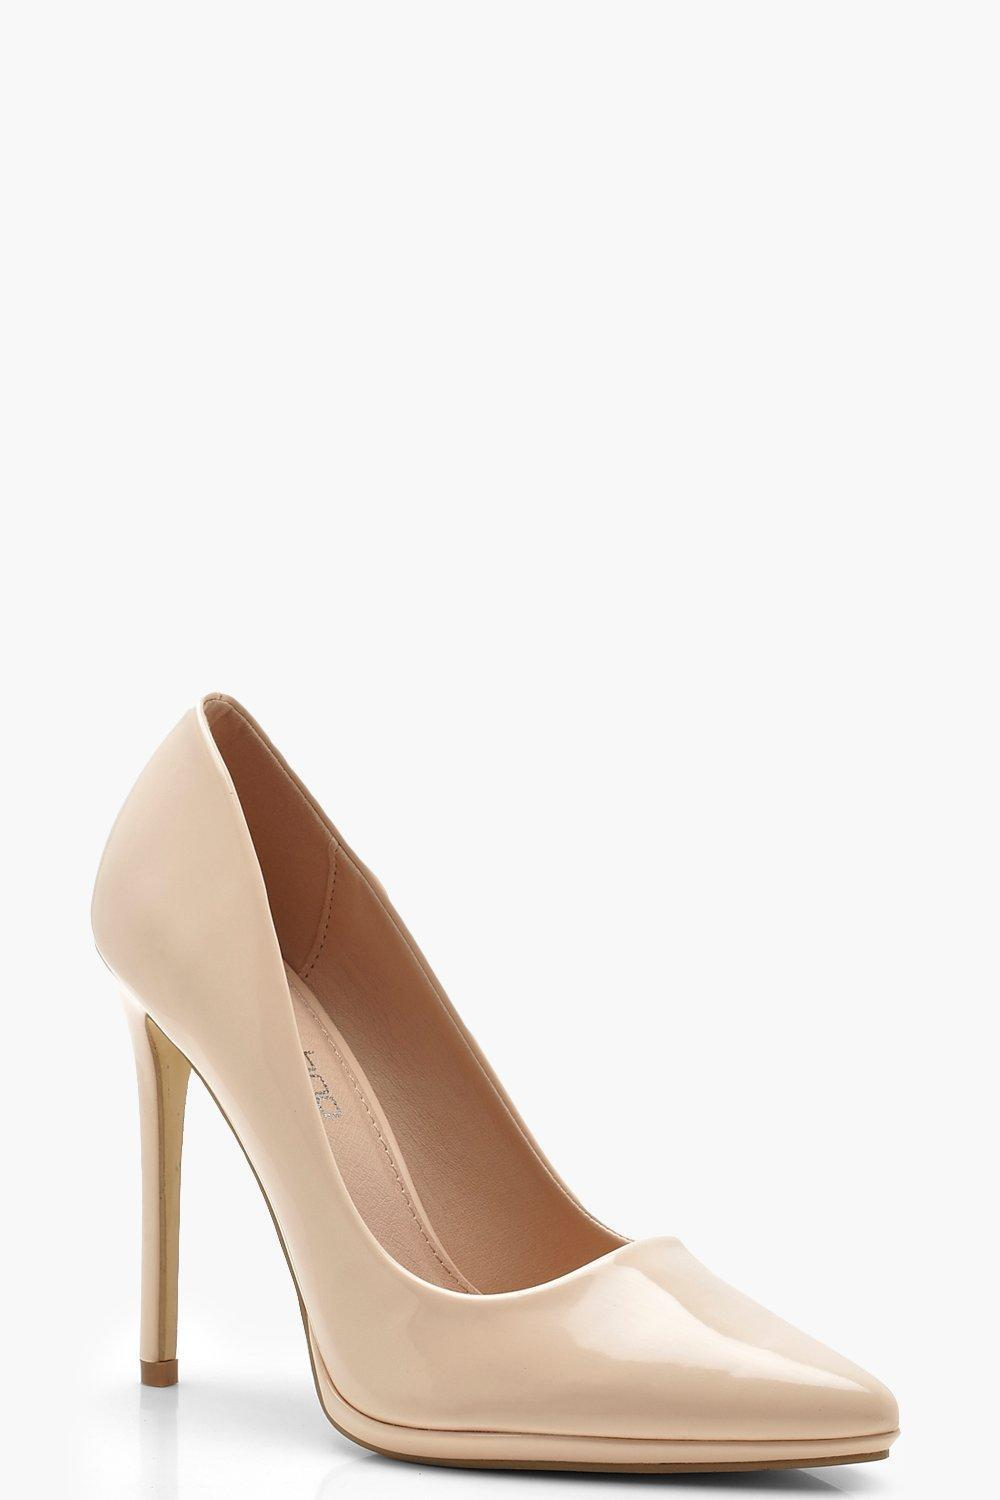 9f6bd7d2fde Boohoo Platform Pointed Court Shoes in Natural - Lyst